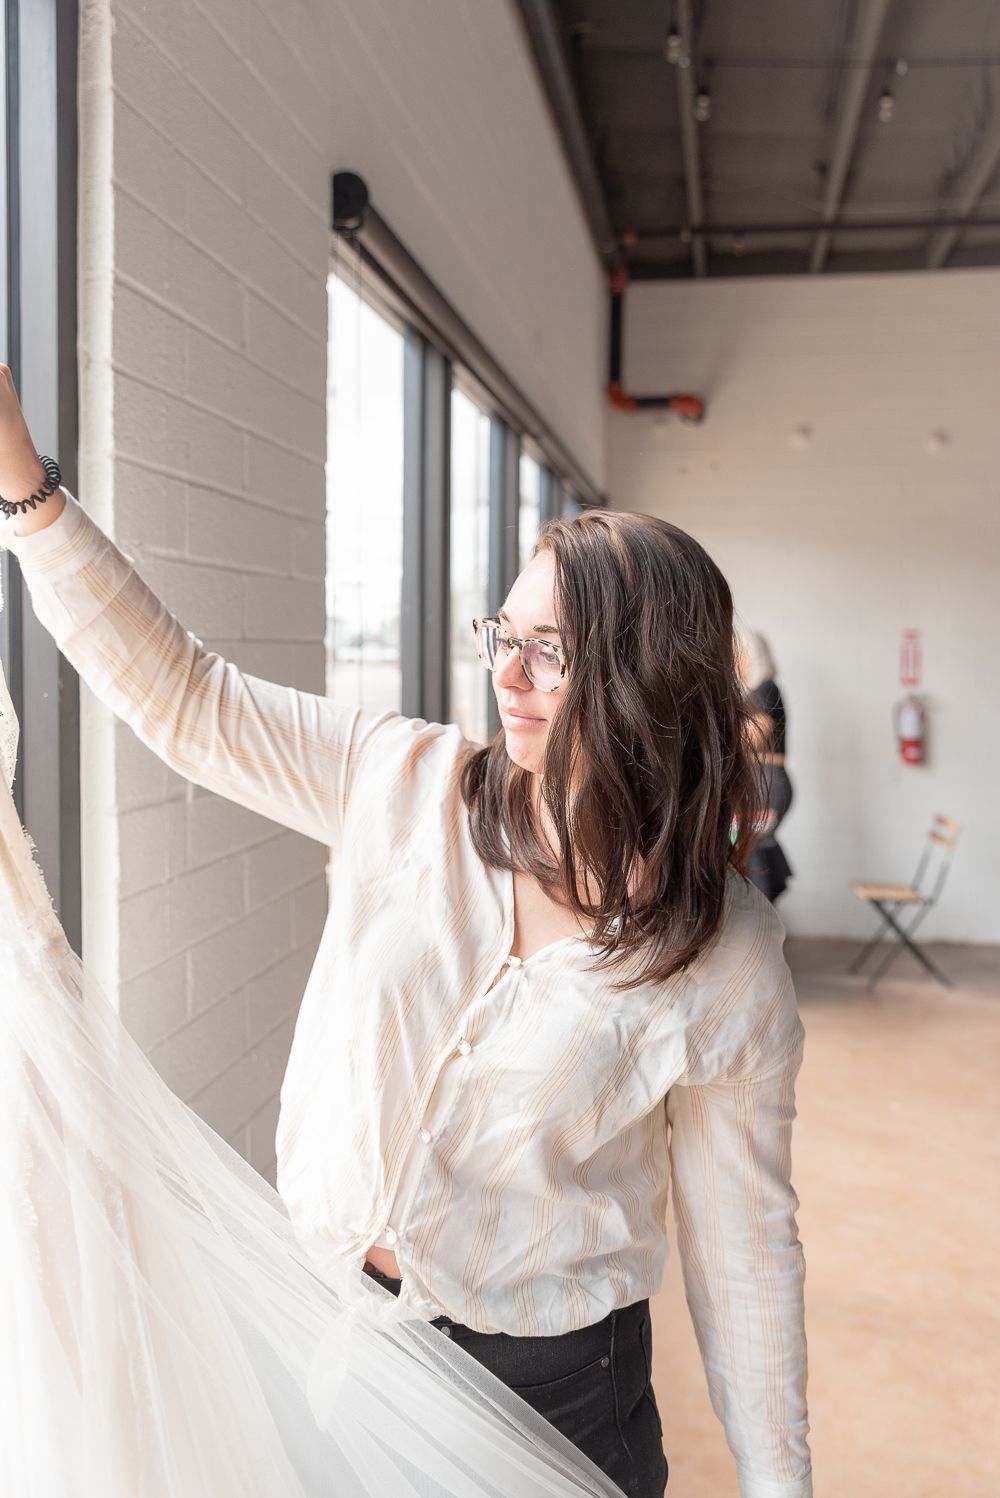 A little BTS shot of Owner and Creative Director of Neue Bride, Sydney getting the dress ready.